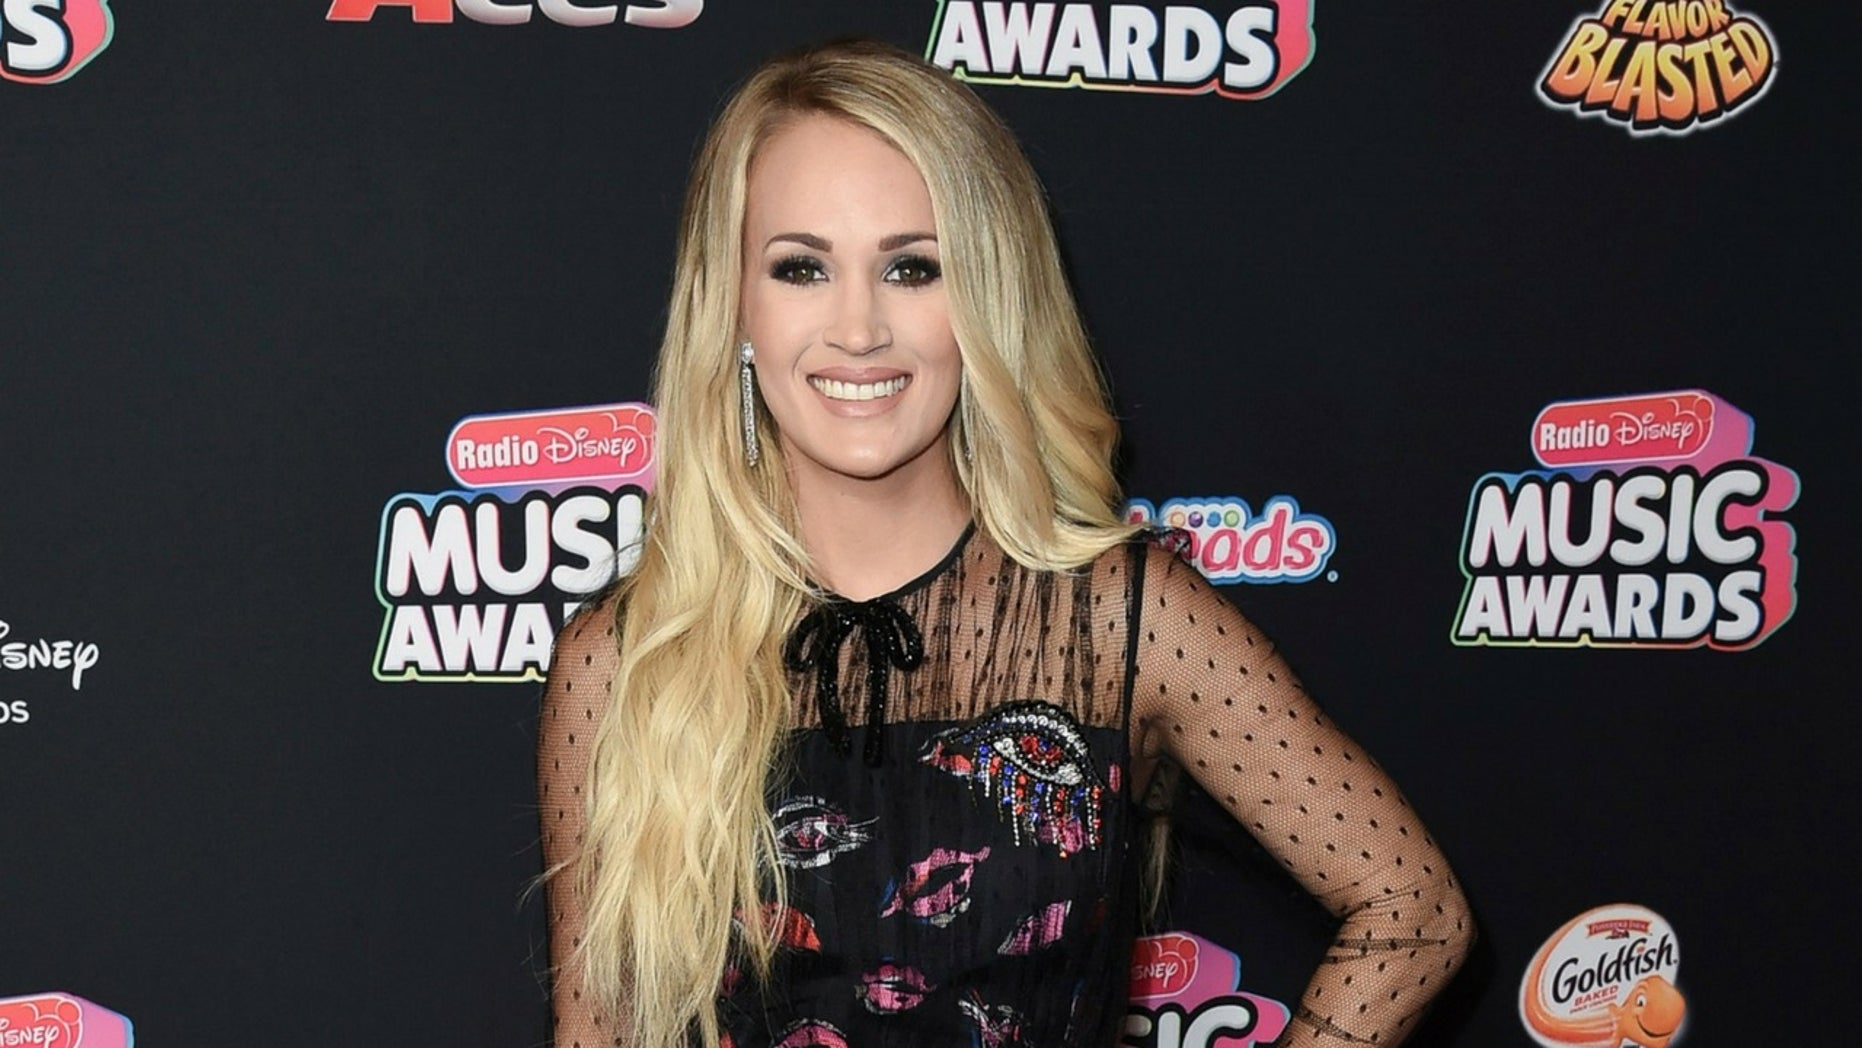 Carrie Underwood spoke about female representation on country radio.